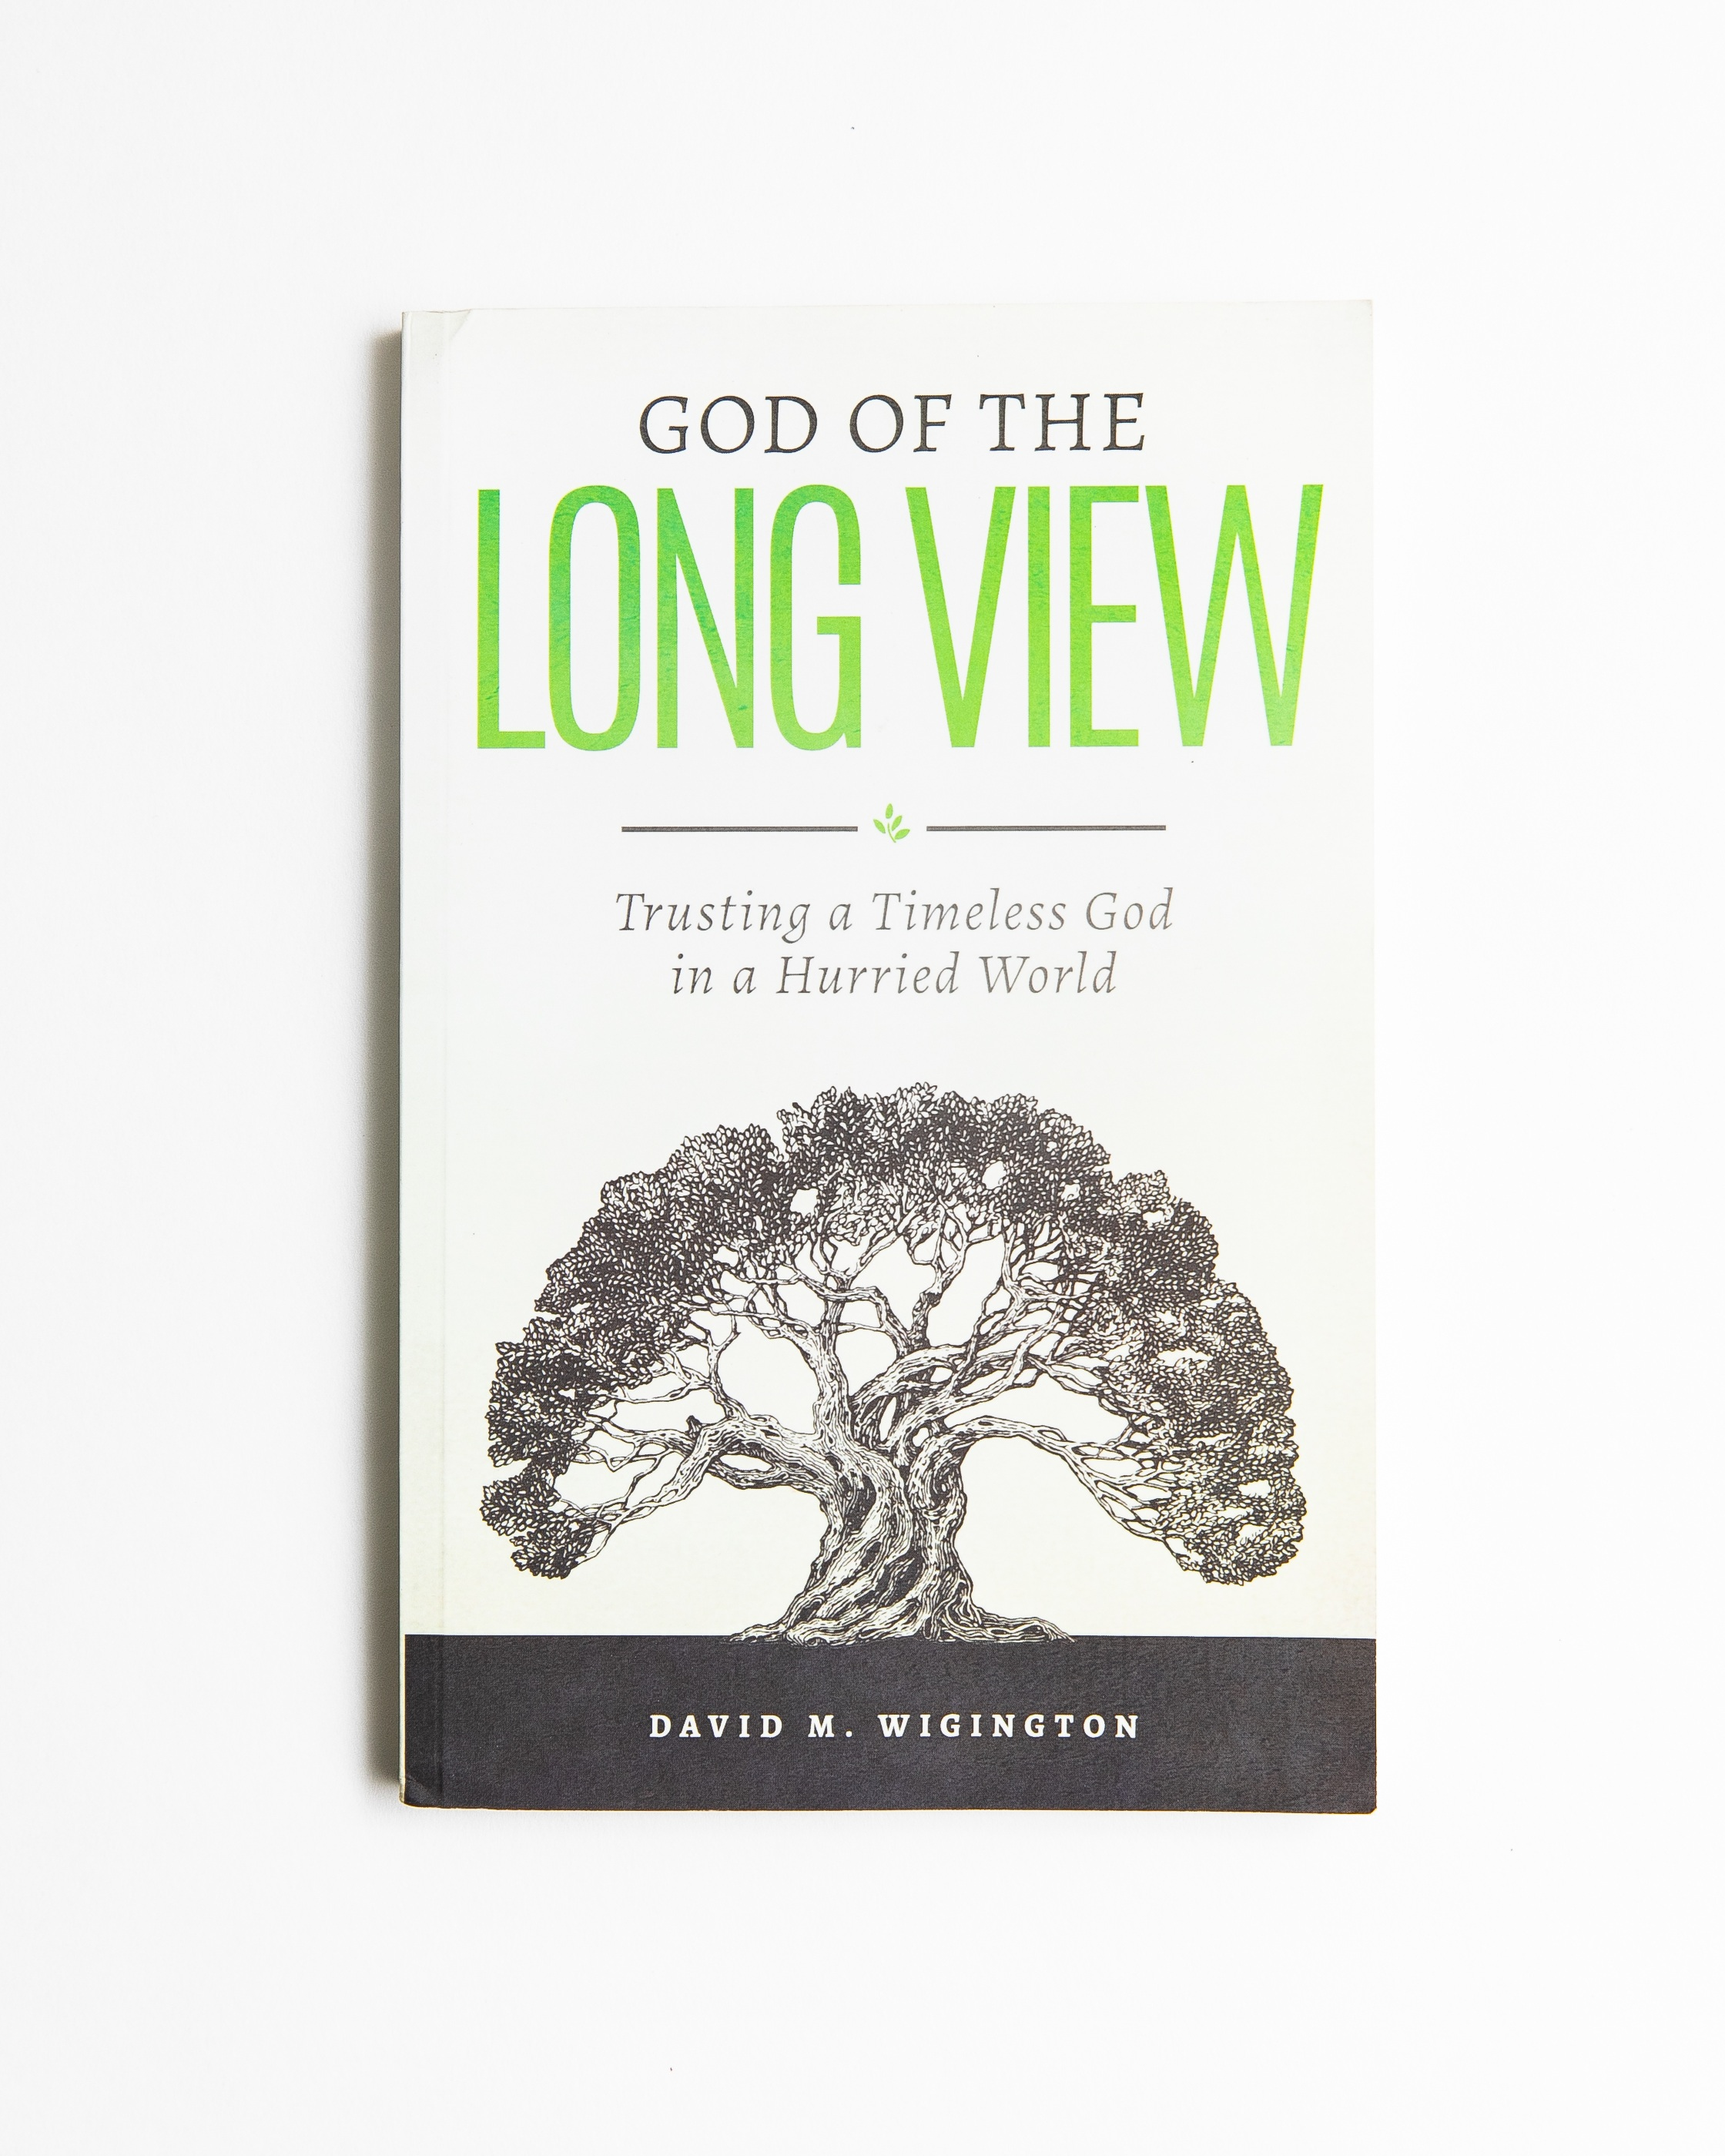 God of the Long View  by independent author David M. Wigington